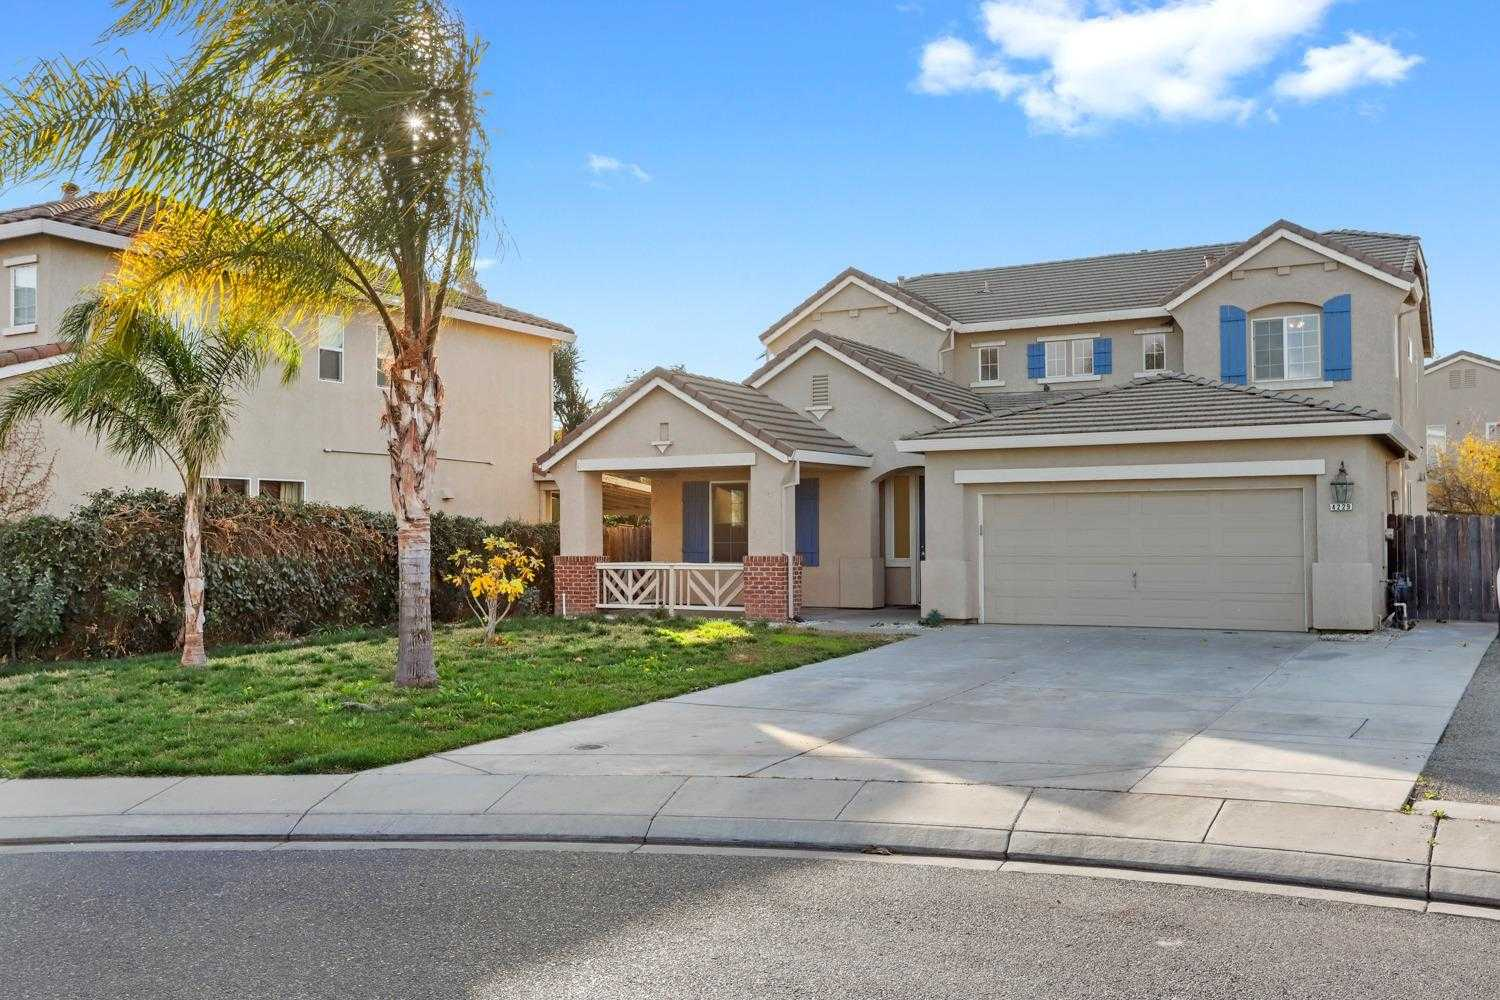 $449,900 - 6Br/3Ba -  for Sale in Modesto